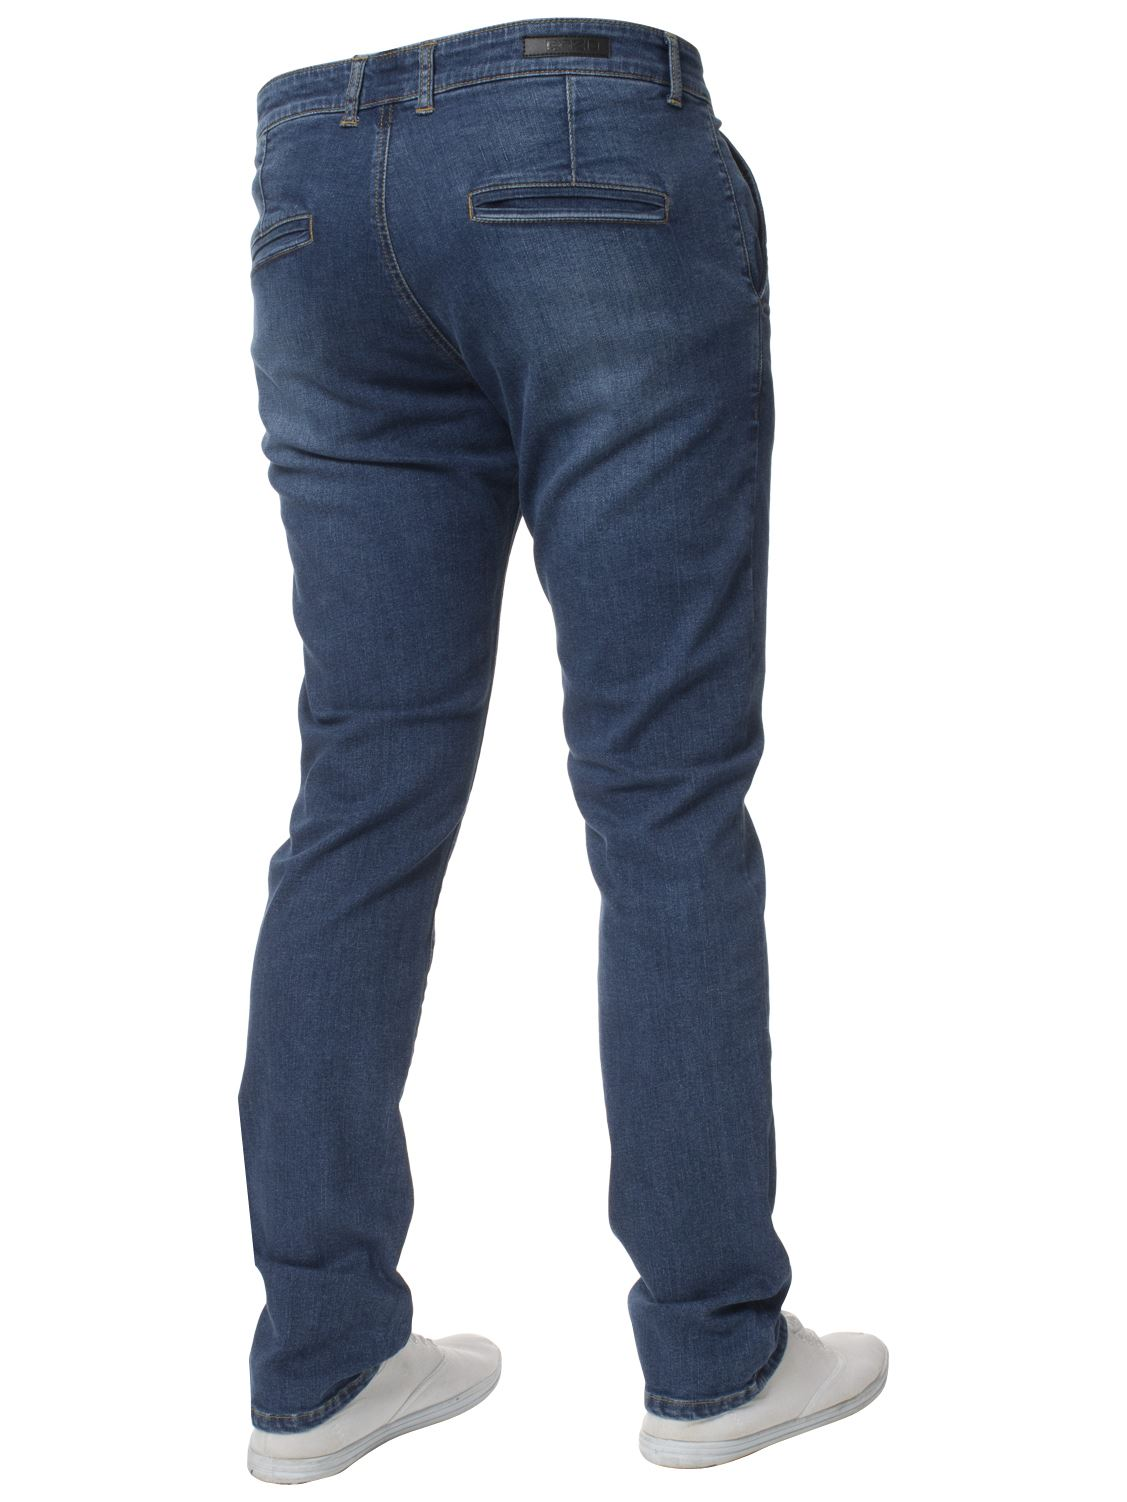 New-Mens-Enzo-Jeans-Denim-Chinos-Skinny-Slim-Fit-Super-Stretch-Trousers-Pants thumbnail 4